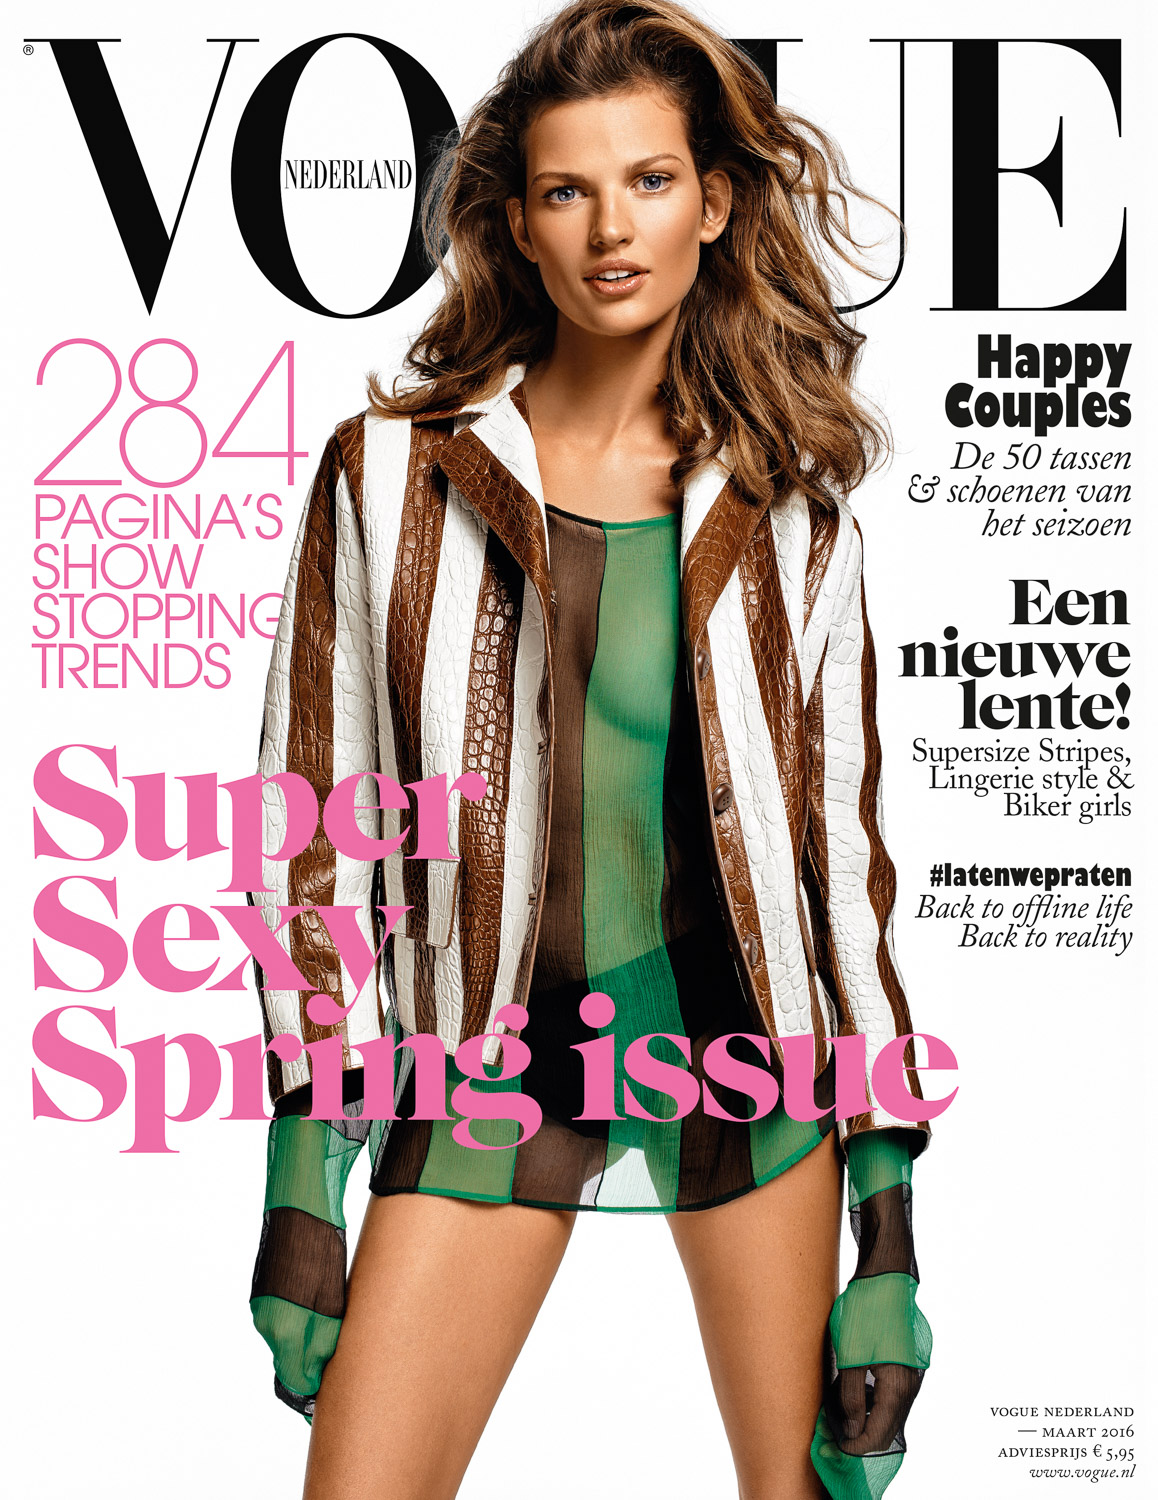 Bette Franke for VogueNL March 2016 Cover by Marc de Groot